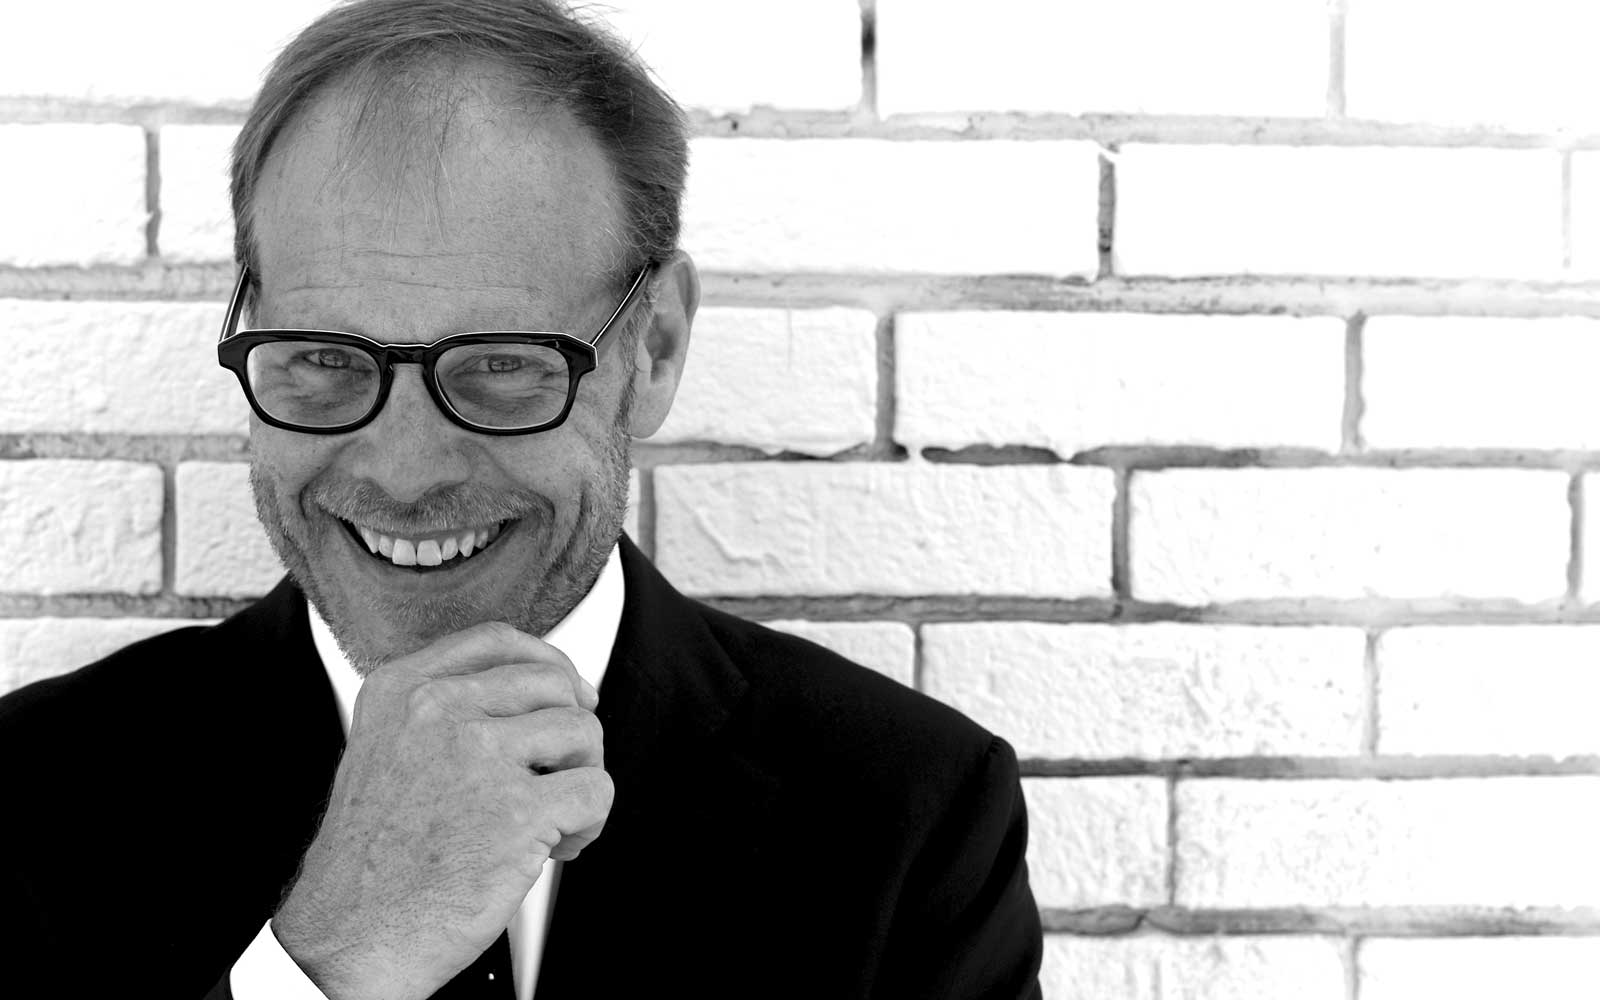 """Alton Brown Talks About His Career, Engaging Fans, and the Future of """"Good Eats"""""""